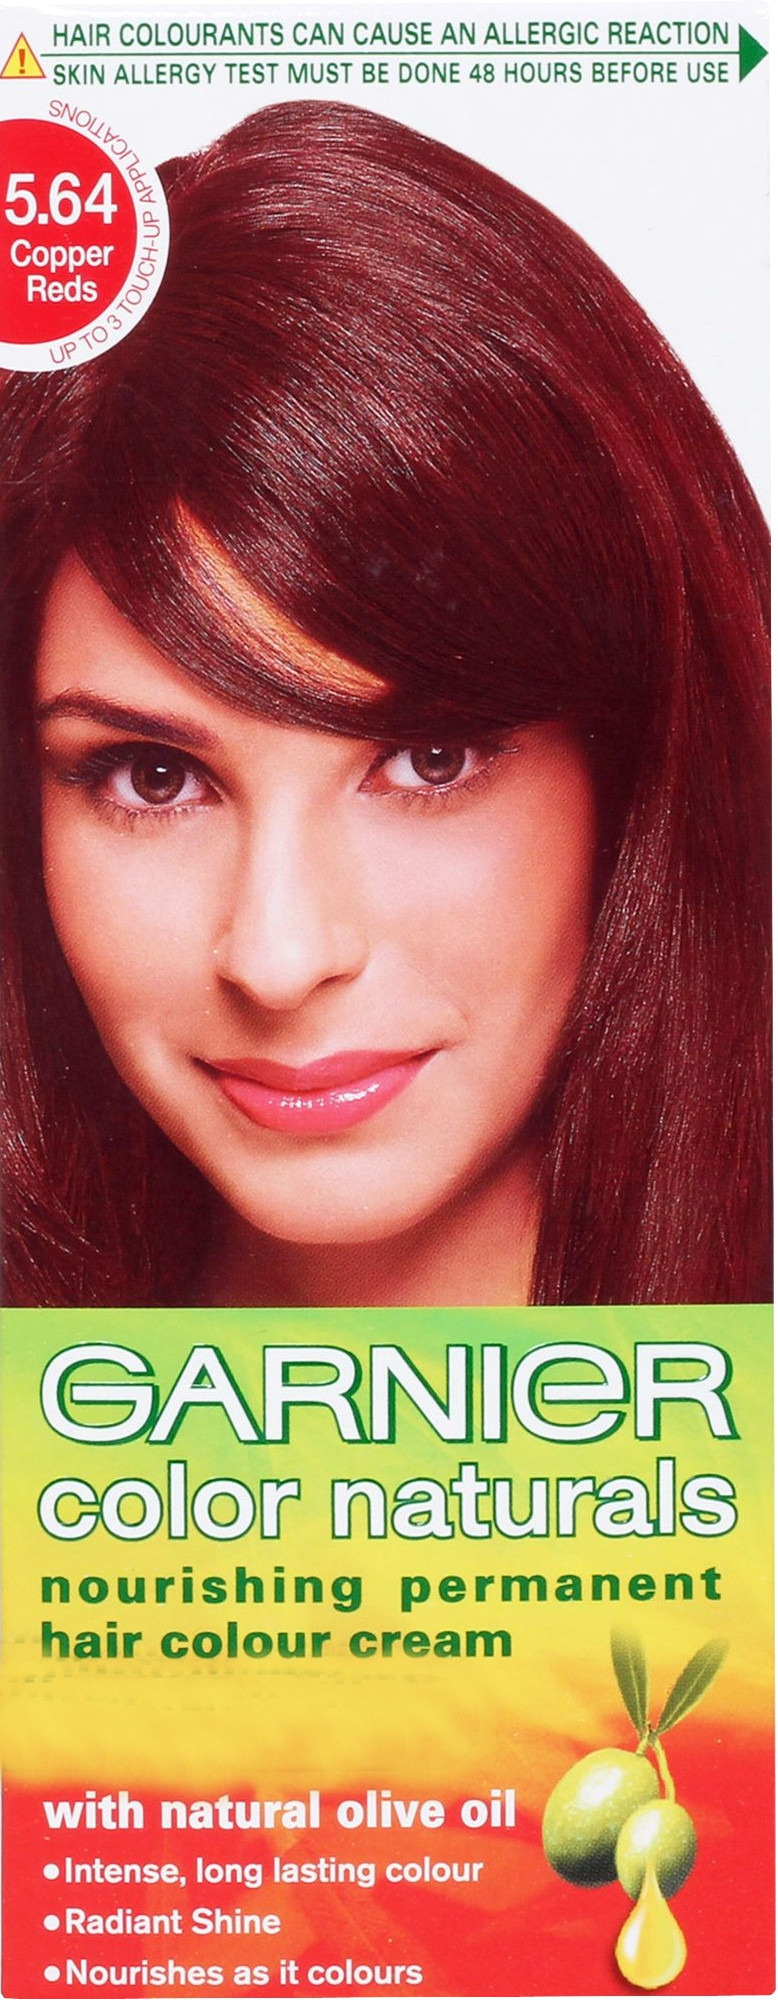 Buy Garnier Color Naturals Hair Copper Reds 564 160 By